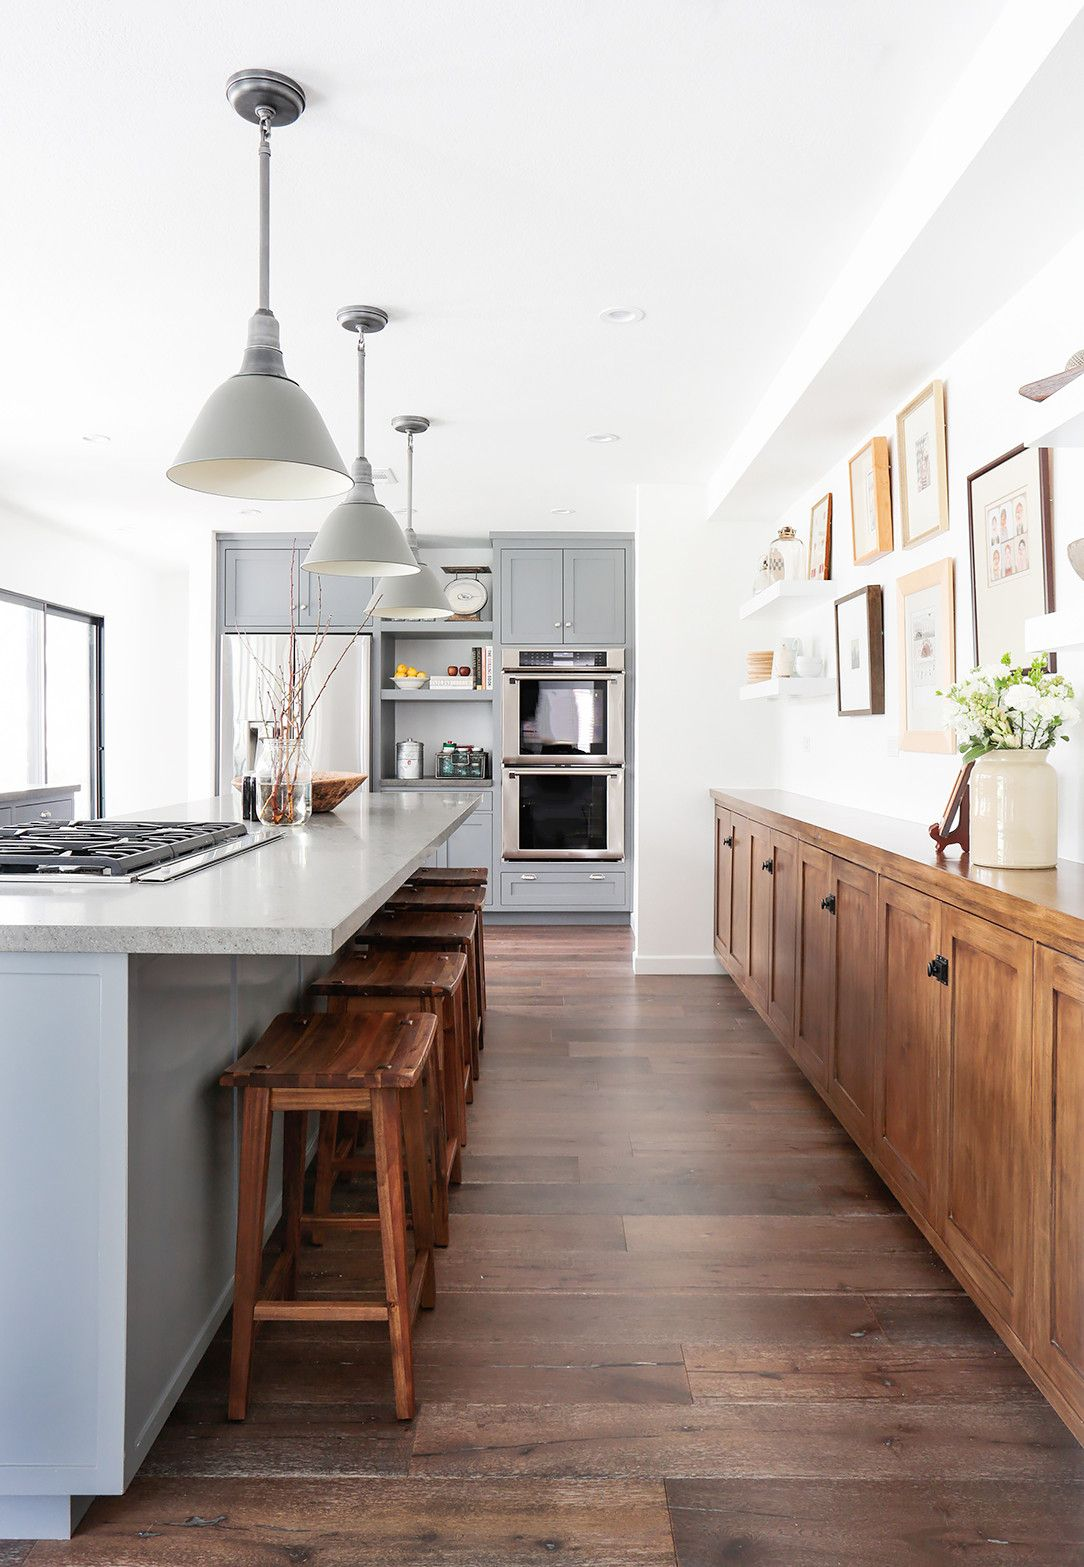 Esszimmer ideen aus dunklem holz the pennypincherus guide to styling your kitchen like a millionaire